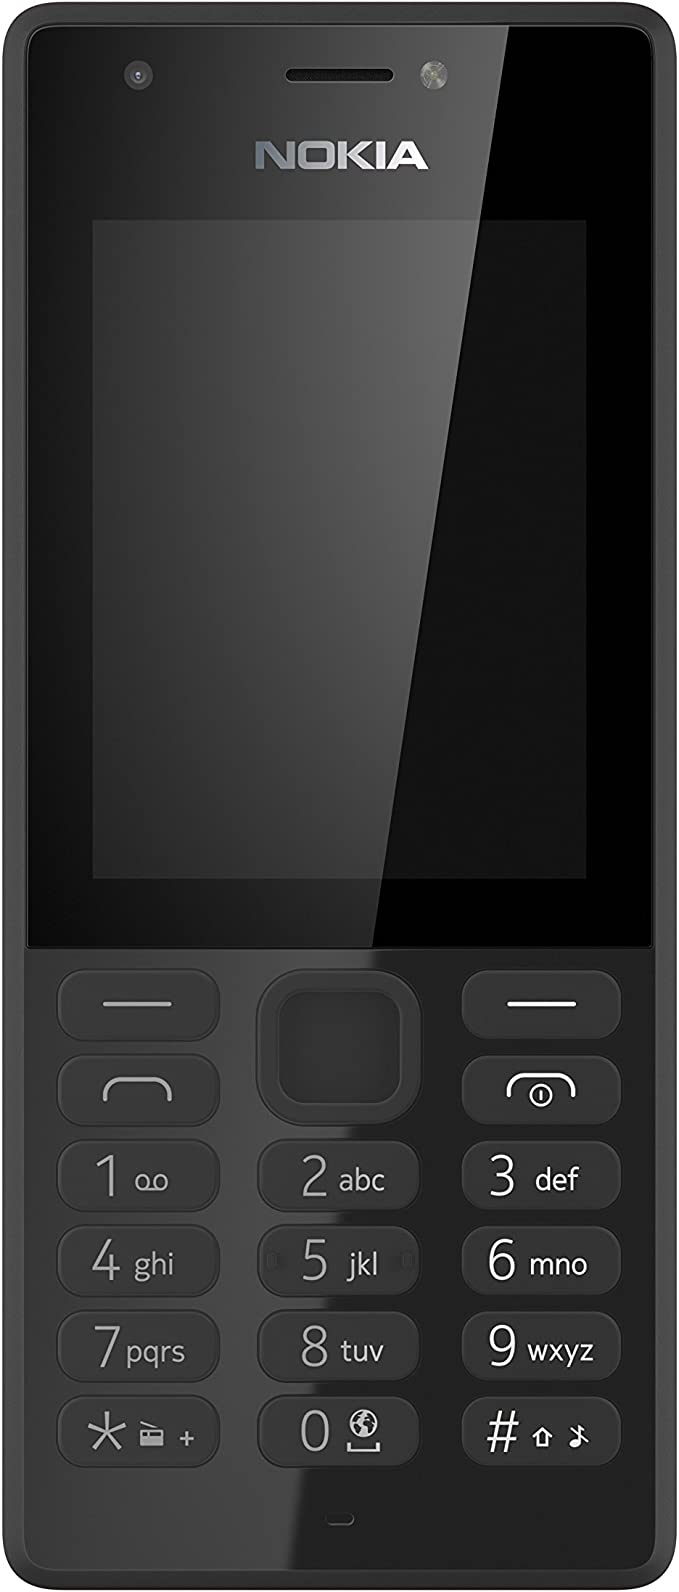 TELEFONO MOVIL NOKIA 216 BLACK - DISPLAY 2.4/6.7CM: Nokia: Amazon ...